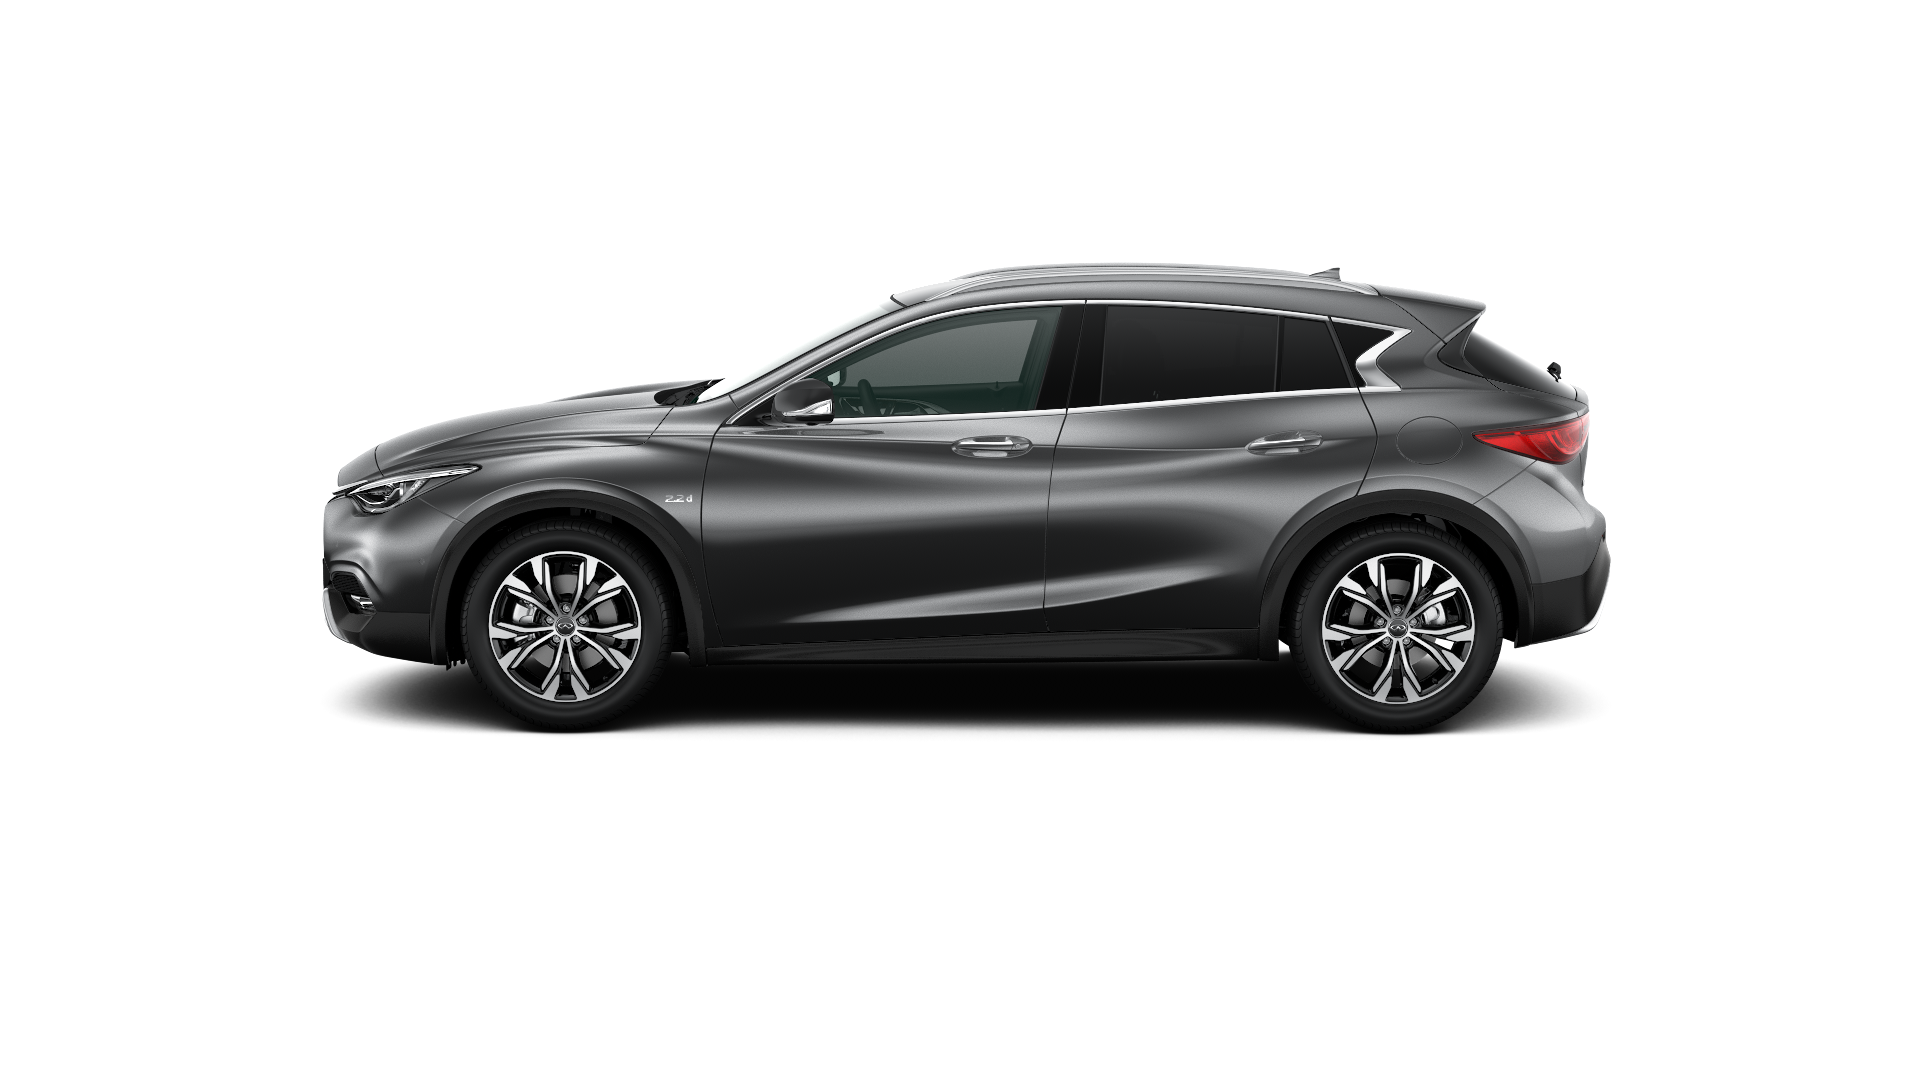 new infiniti q30 cars for sale at mervyn stewart with dealerships in belfast and north down. Black Bedroom Furniture Sets. Home Design Ideas